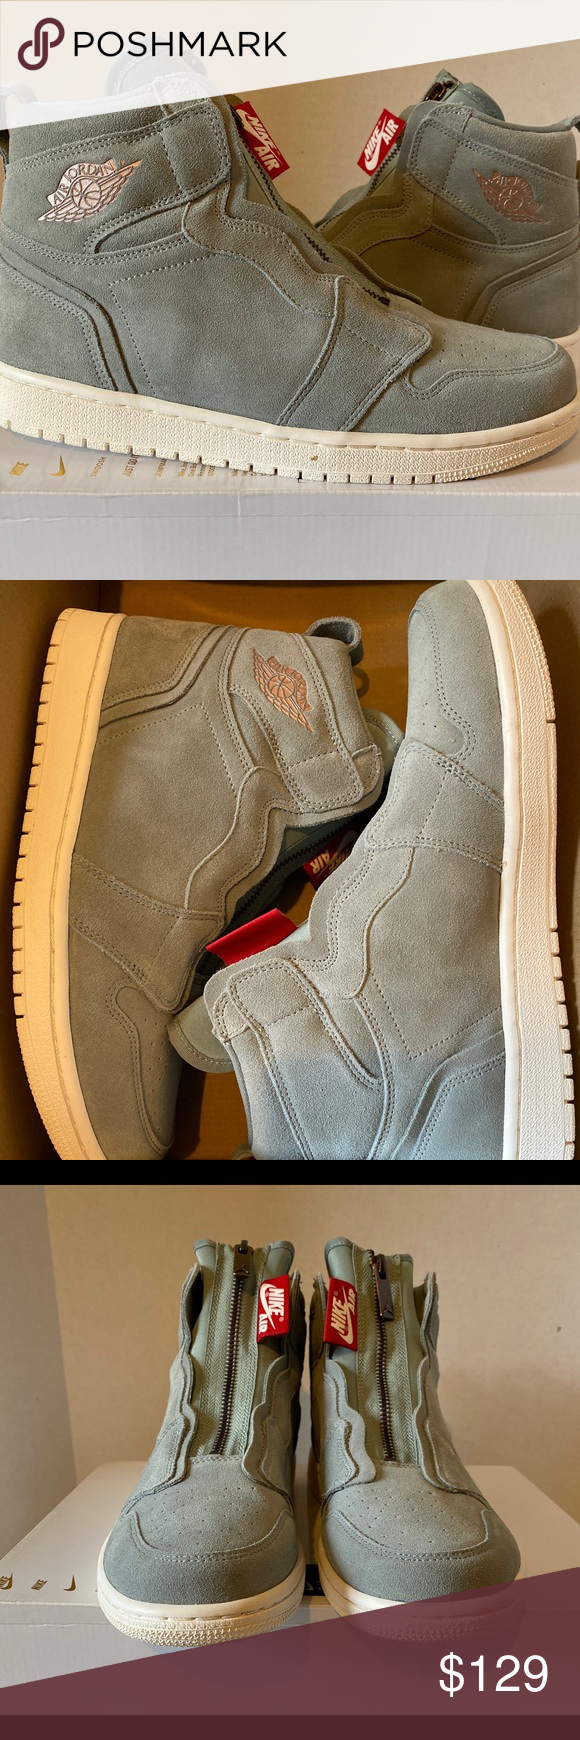 NEW! Women's Air Jordan 1 high zip NEW! Women's Air Jordan 1 high zip Super cute and very comfortable (cushioned insole) suede air Jordan sneakers Comes with original box with no lid, if you want it Fits true to size  Color: Mica Green Nike Shoes Sneakers #airjordan1outfitwomen